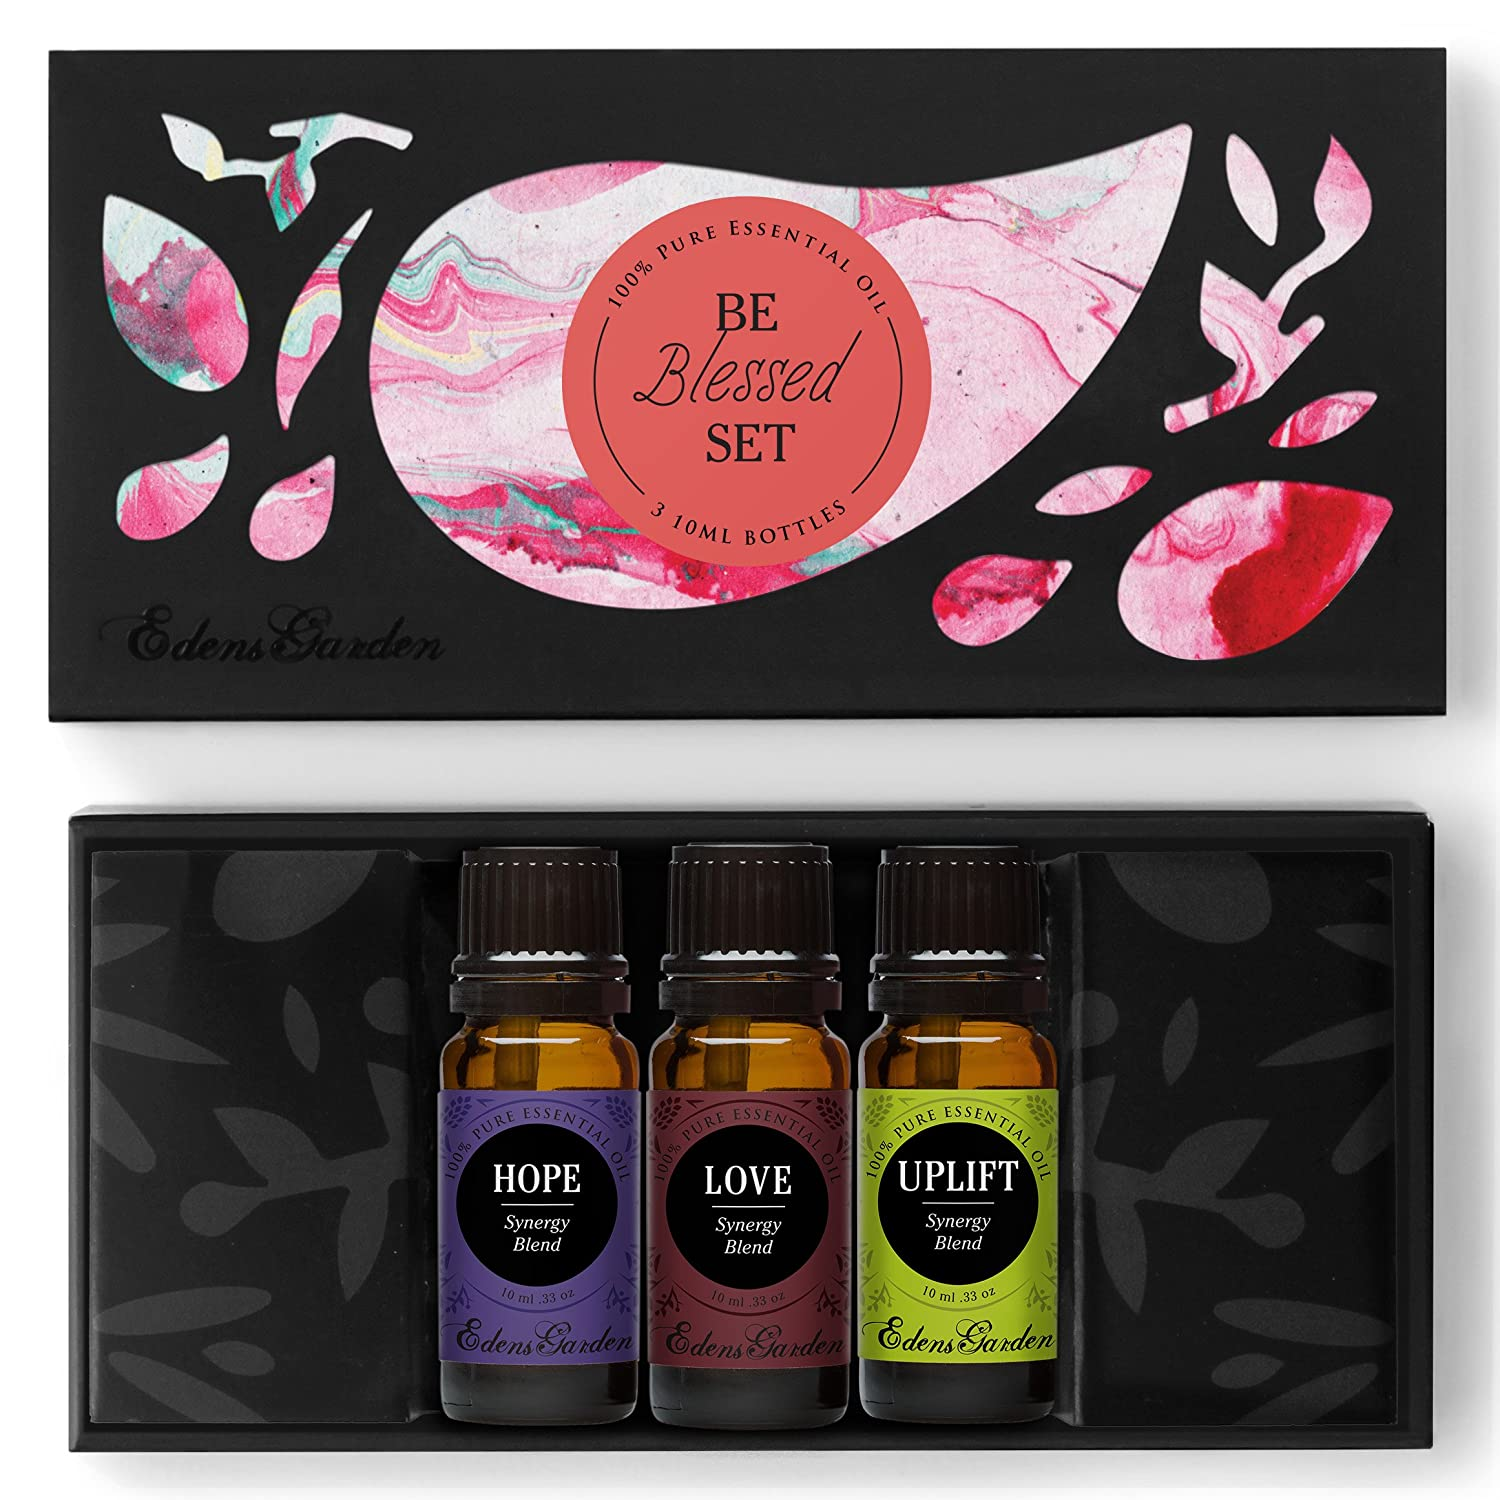 Be Blessed Essential Oil Set- 100% Pure Therapeutic Grade Aromatherapy Oils- 3/ 10 ml of Hope, Love, Uplift by Edens Garden by Edens Garden B00GBHQAGO